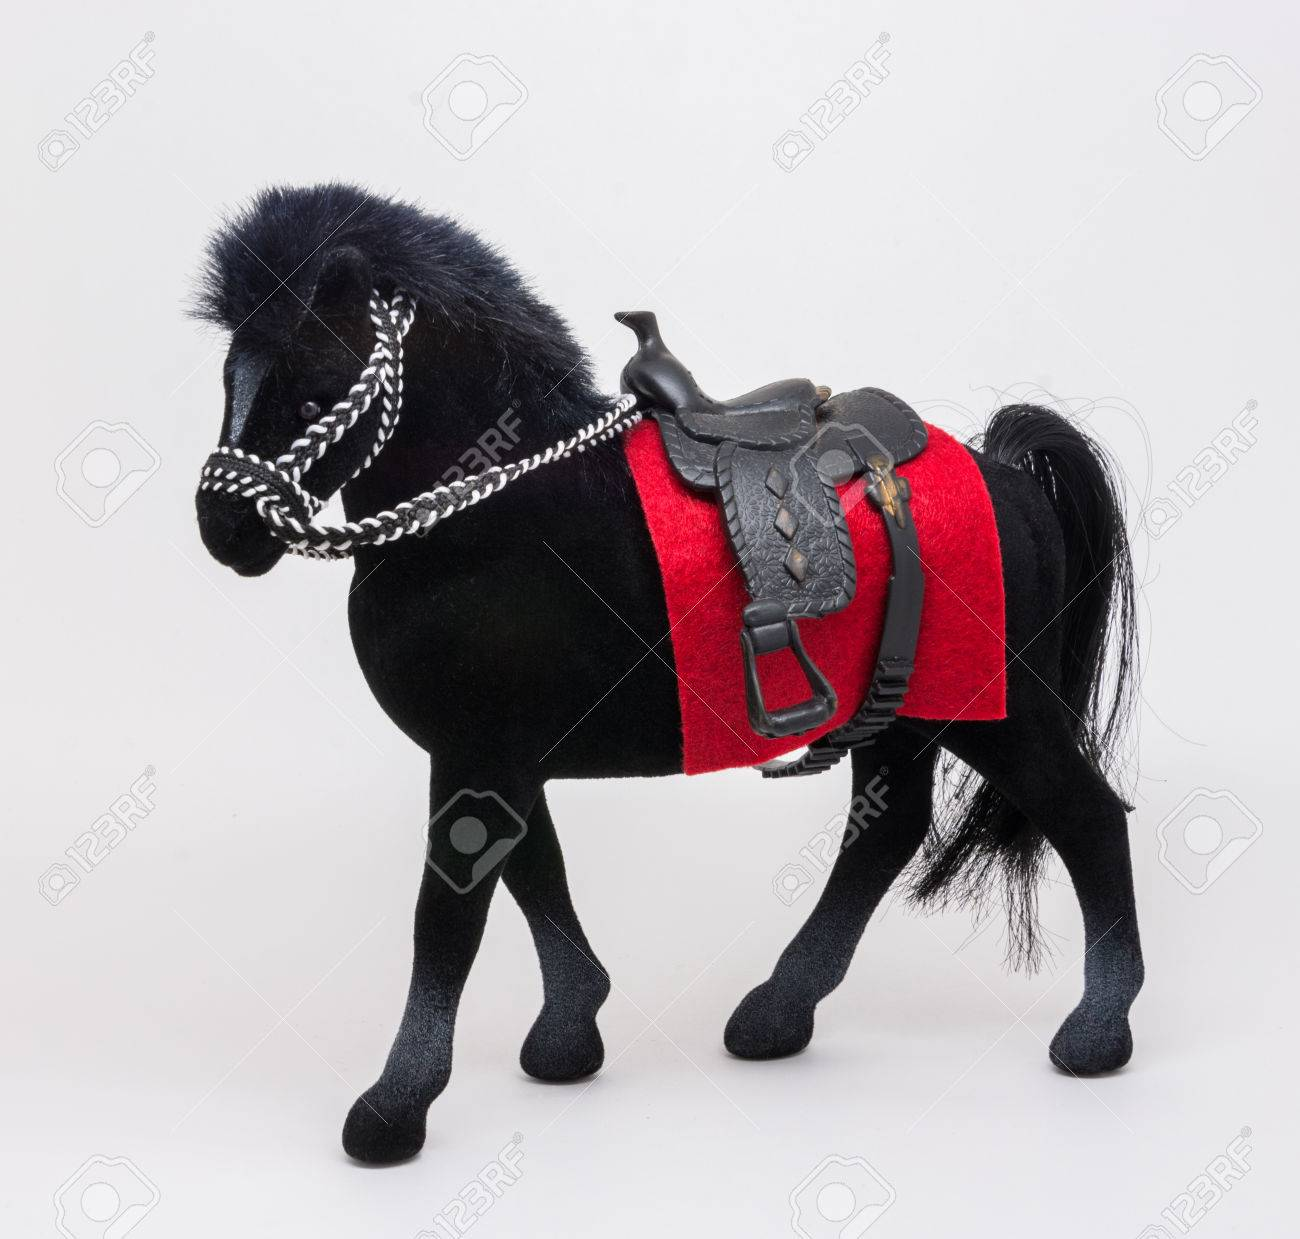 A Small Beautiful Black Horse Toy With A Red Cape And A Seat Stock Photo Picture And Royalty Free Image Image 27431699